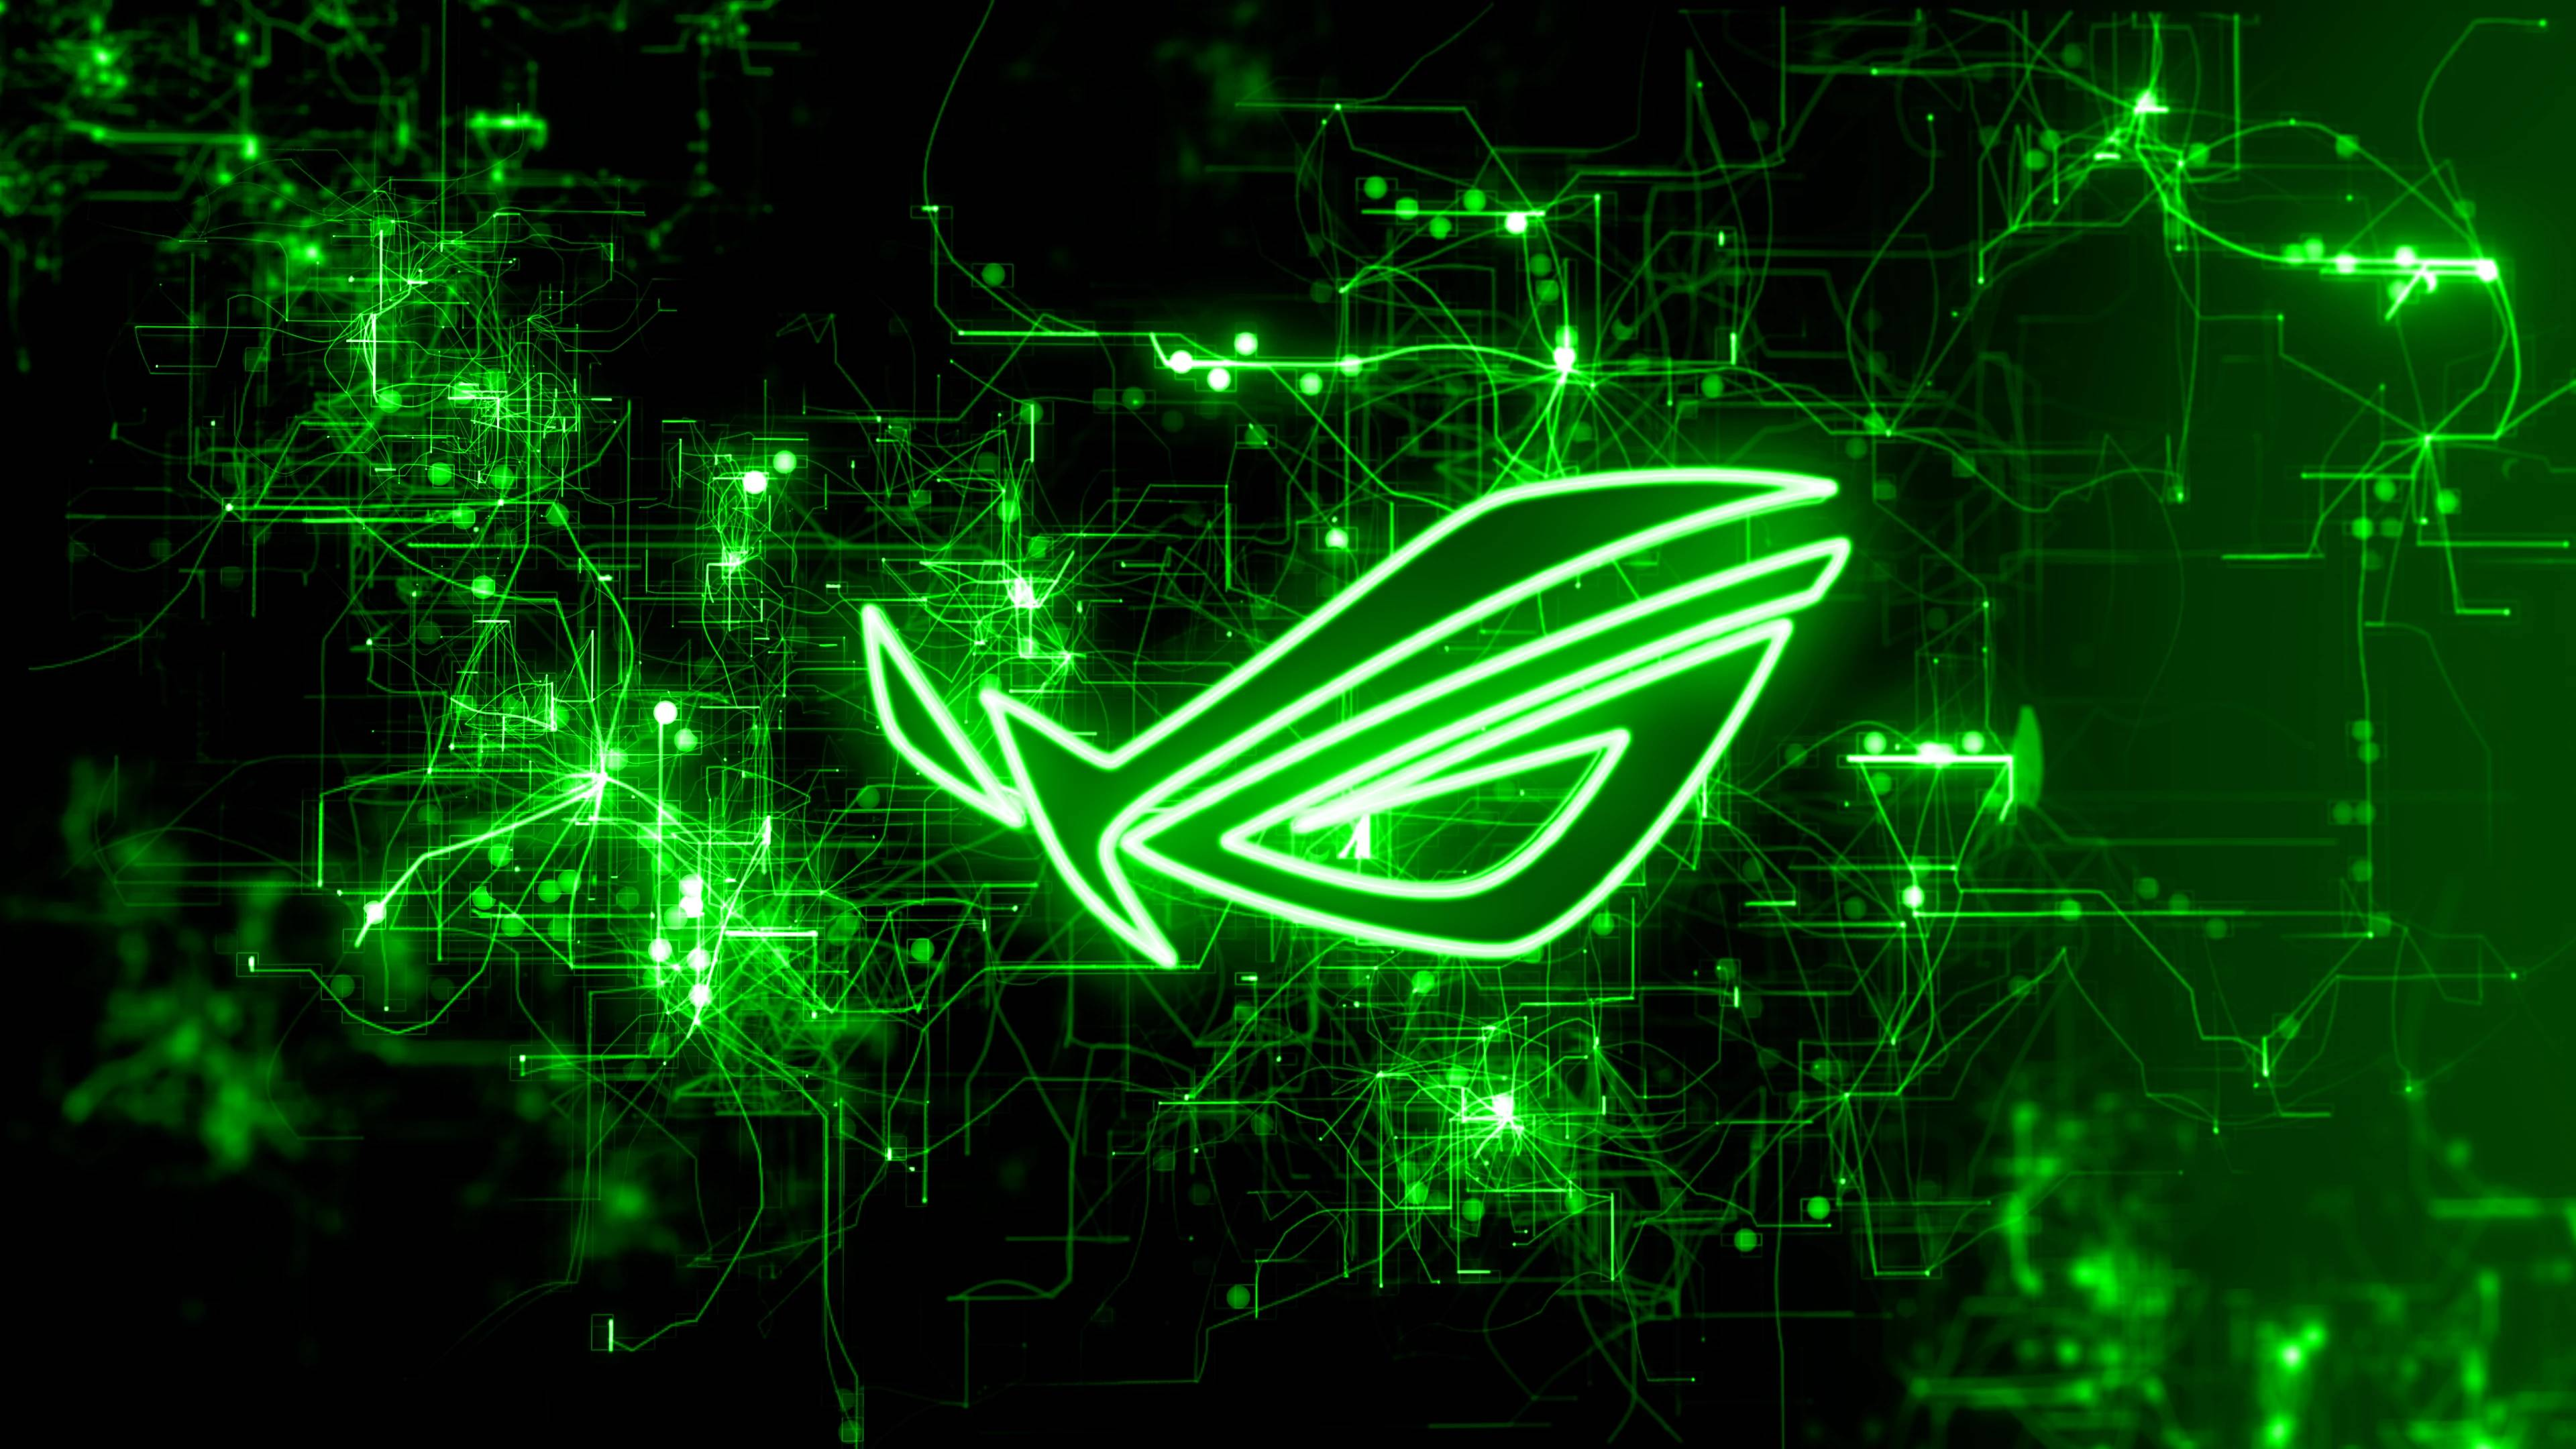 Asus Green Wallpapers Top Free Asus Green Backgrounds Wallpaperaccess